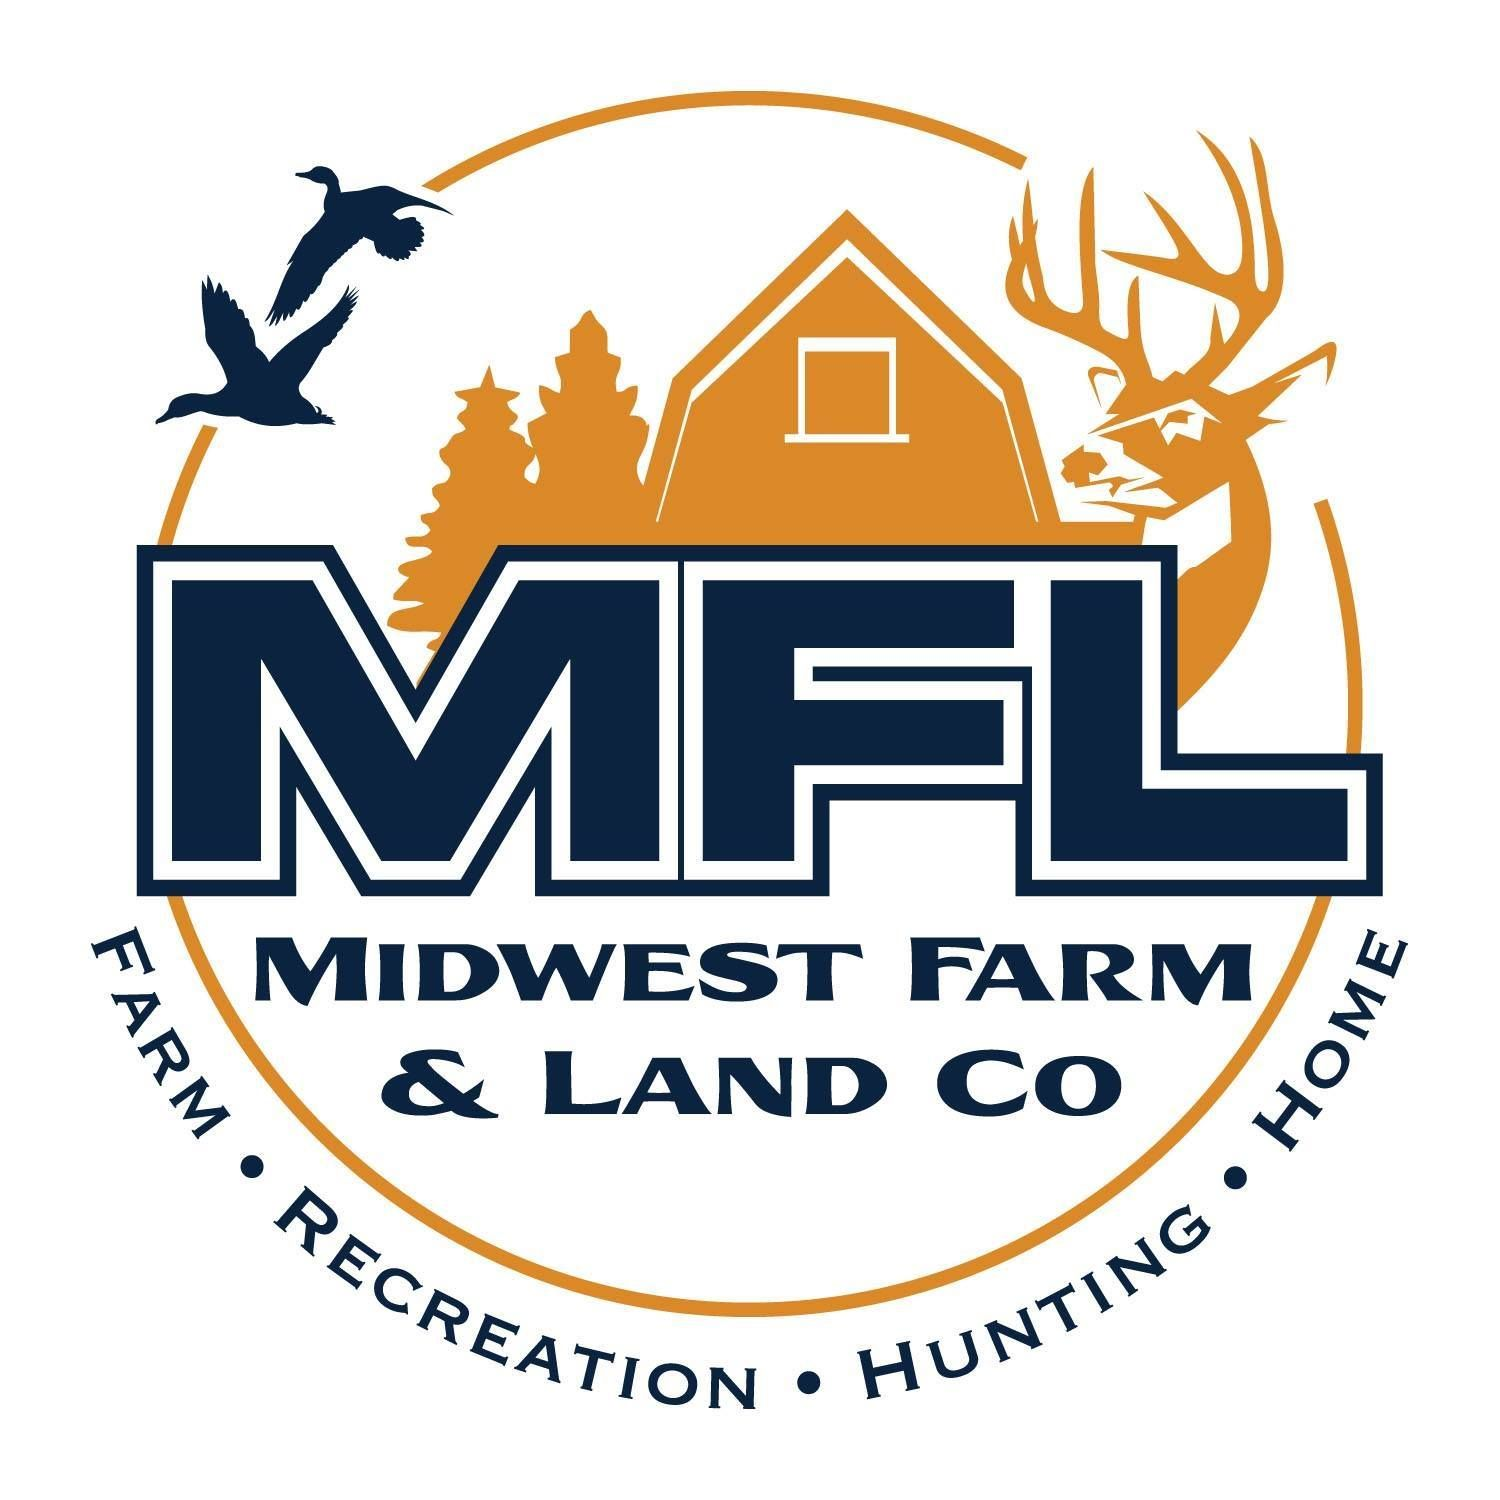 Midwest Farm & Land Co. is a Top-Rated Real Estate Agency, Assisting Buyers and Sellers With Home, Farm, Hunting and Recreational Land in Southern Illinois